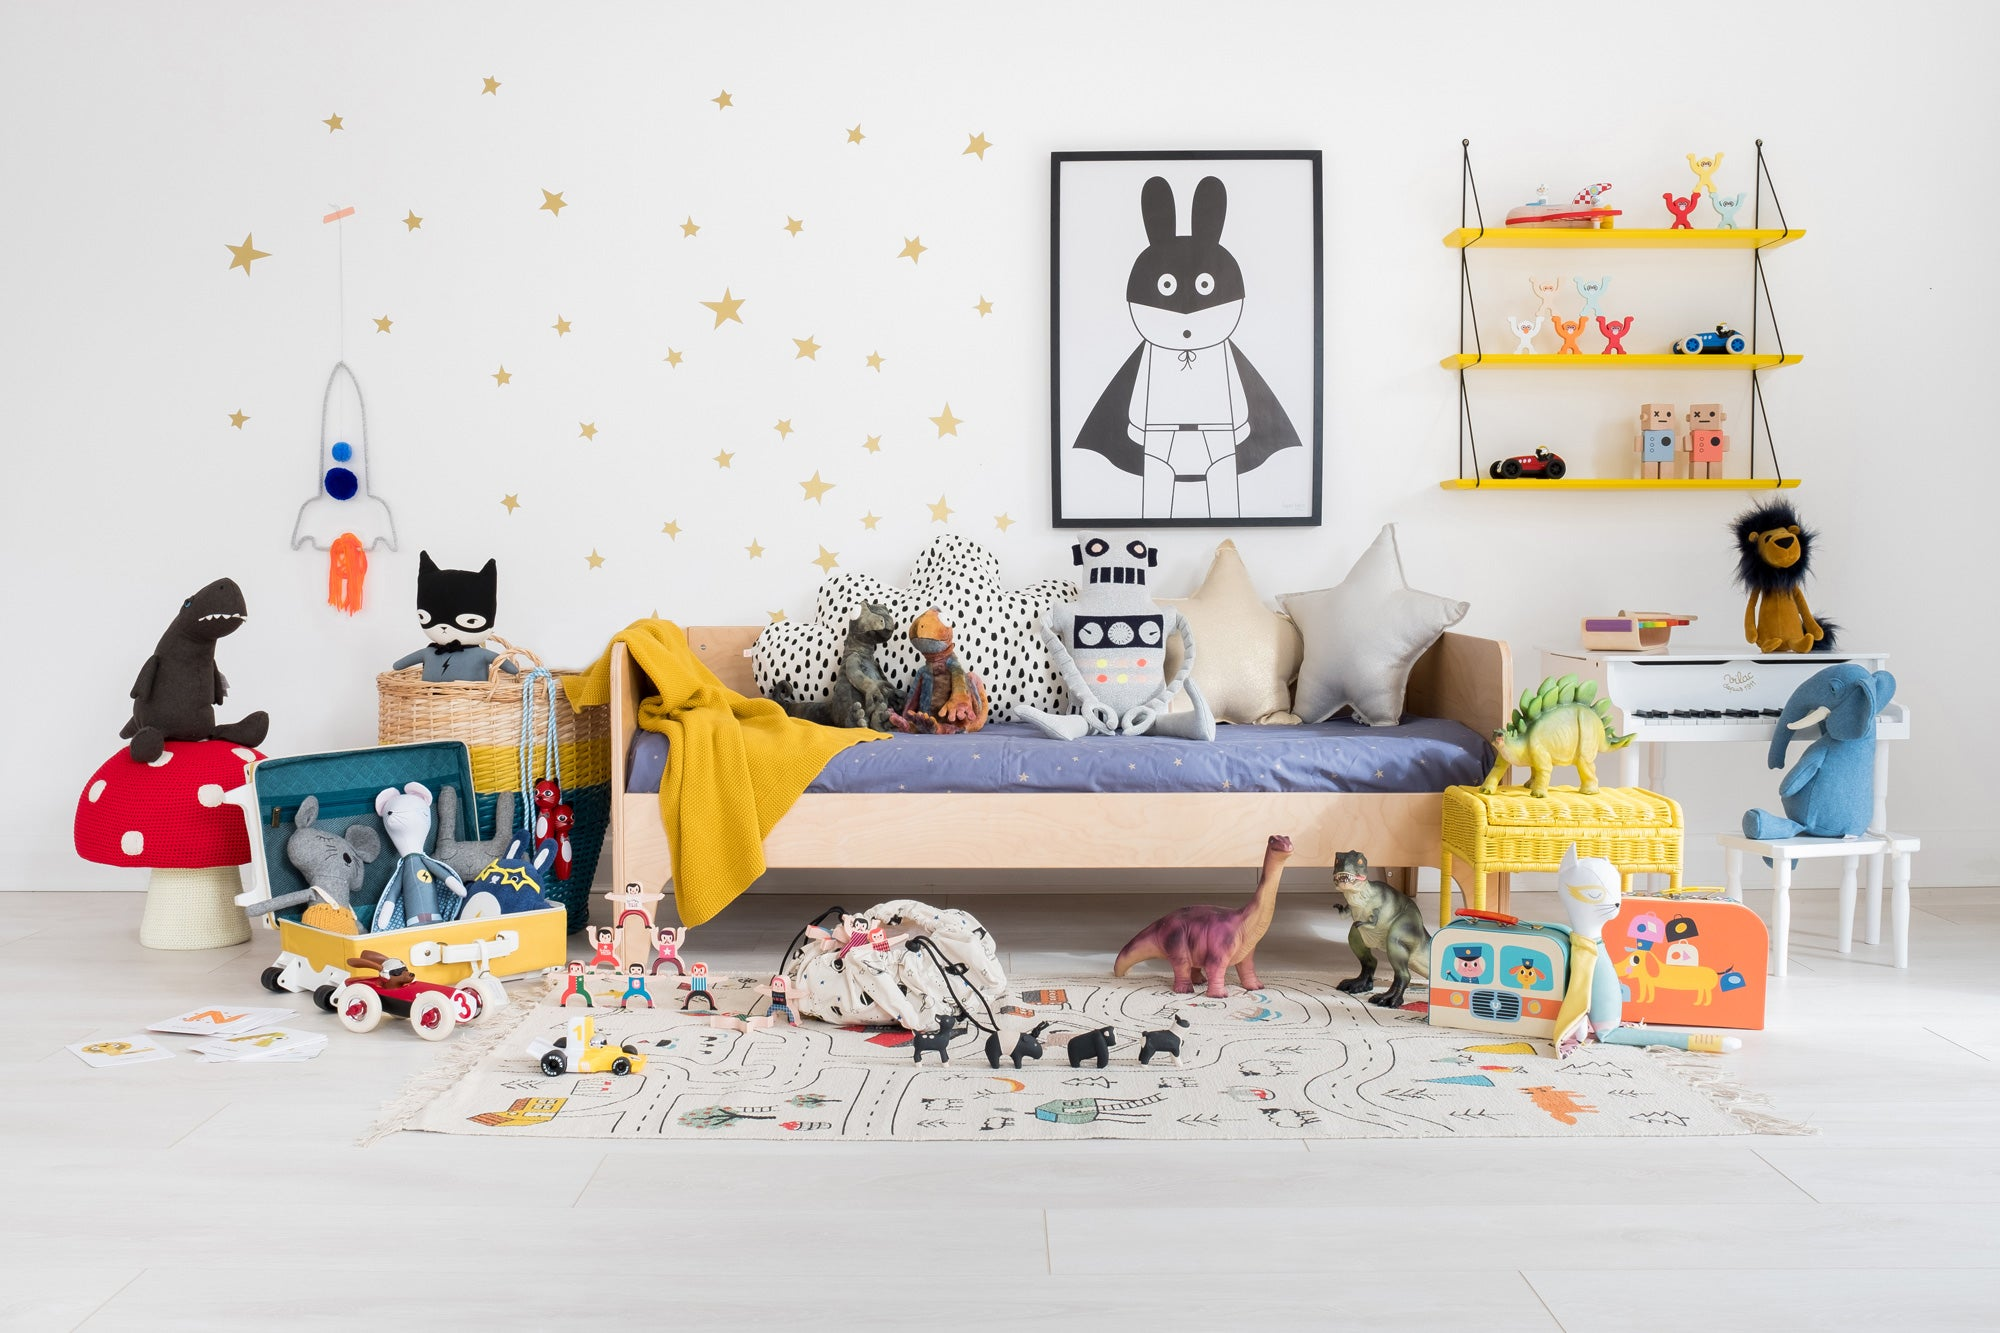 Spaceships and Superheroes Children's Room, styled by Bobby Rabbit.